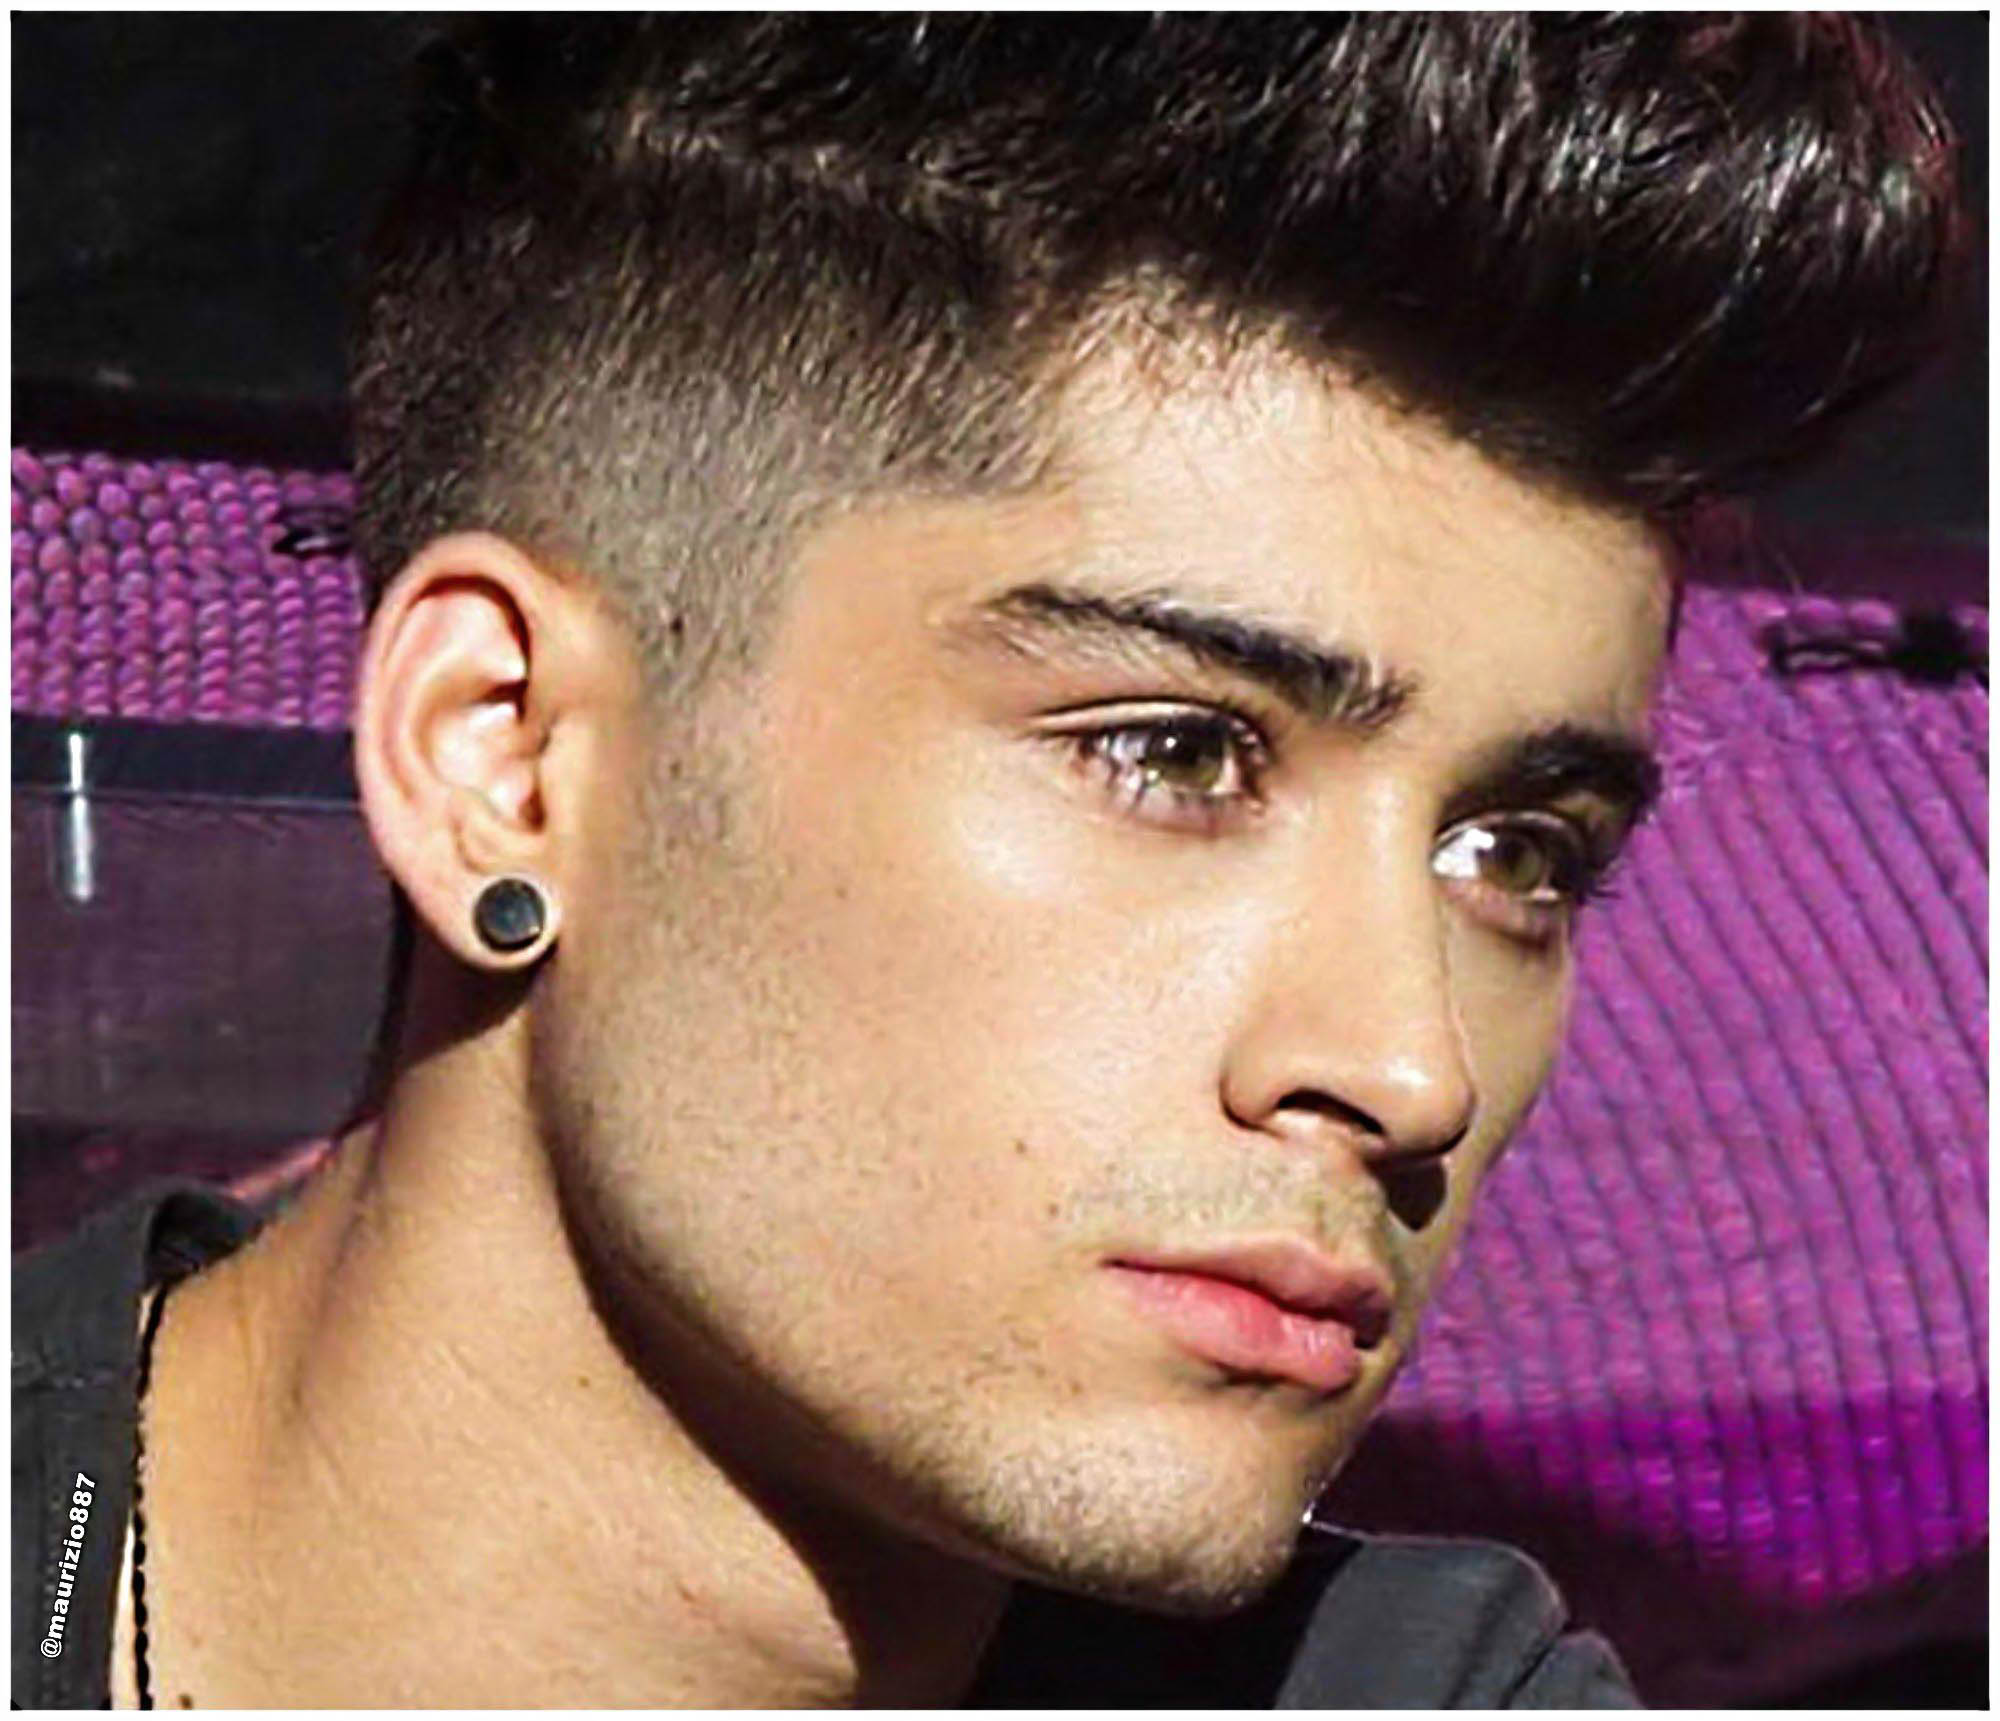 http://images6.fanpop.com/image/photos/34700000/Zayn-malik-2013-one-direction-34733362-2000-1721.jpg